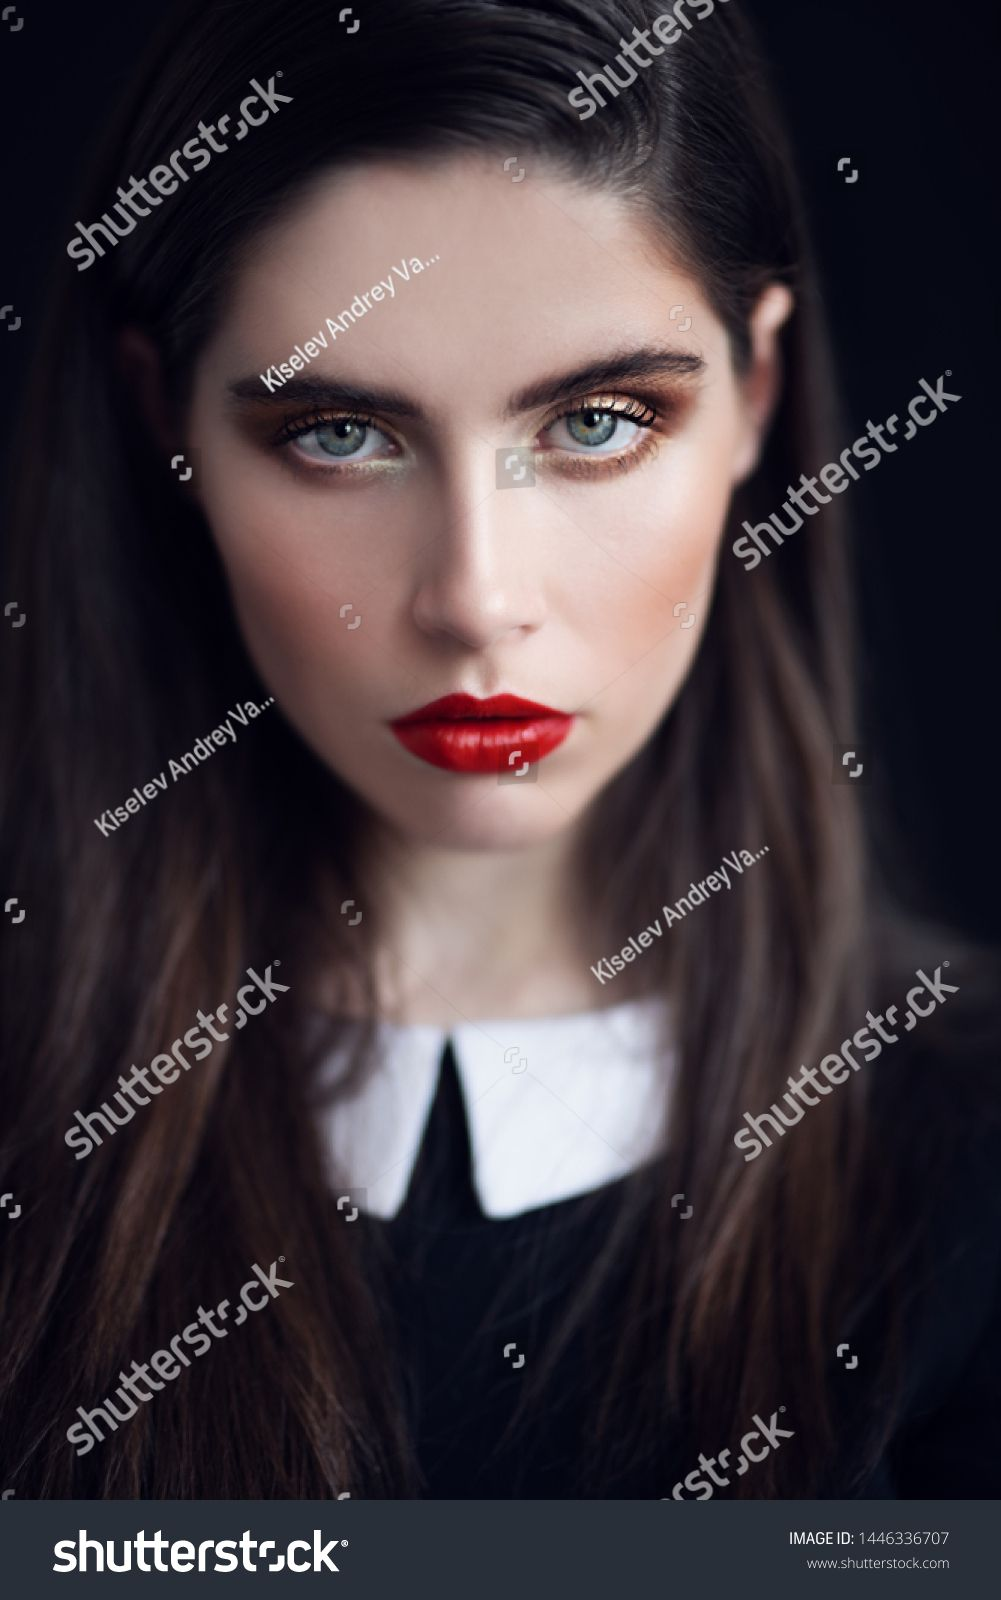 A Close Up Portrait Of A Beautiful Dark Haired Young Woman Posing